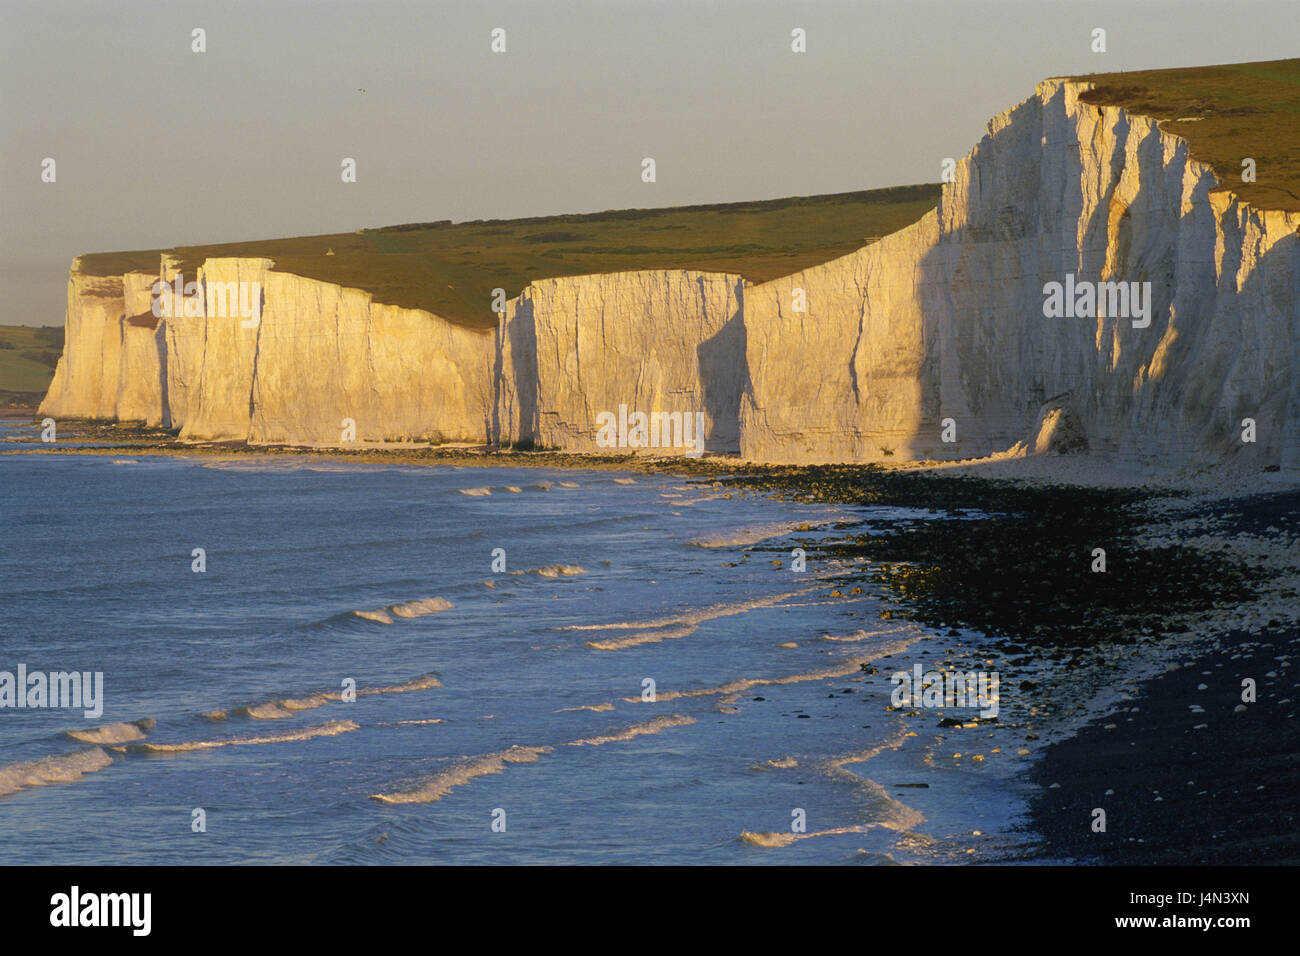 Great Britain, England, Sussex, Eastbourne, Seven Sisters, Beachy Head, rock, beach, evening light, - Stock Image